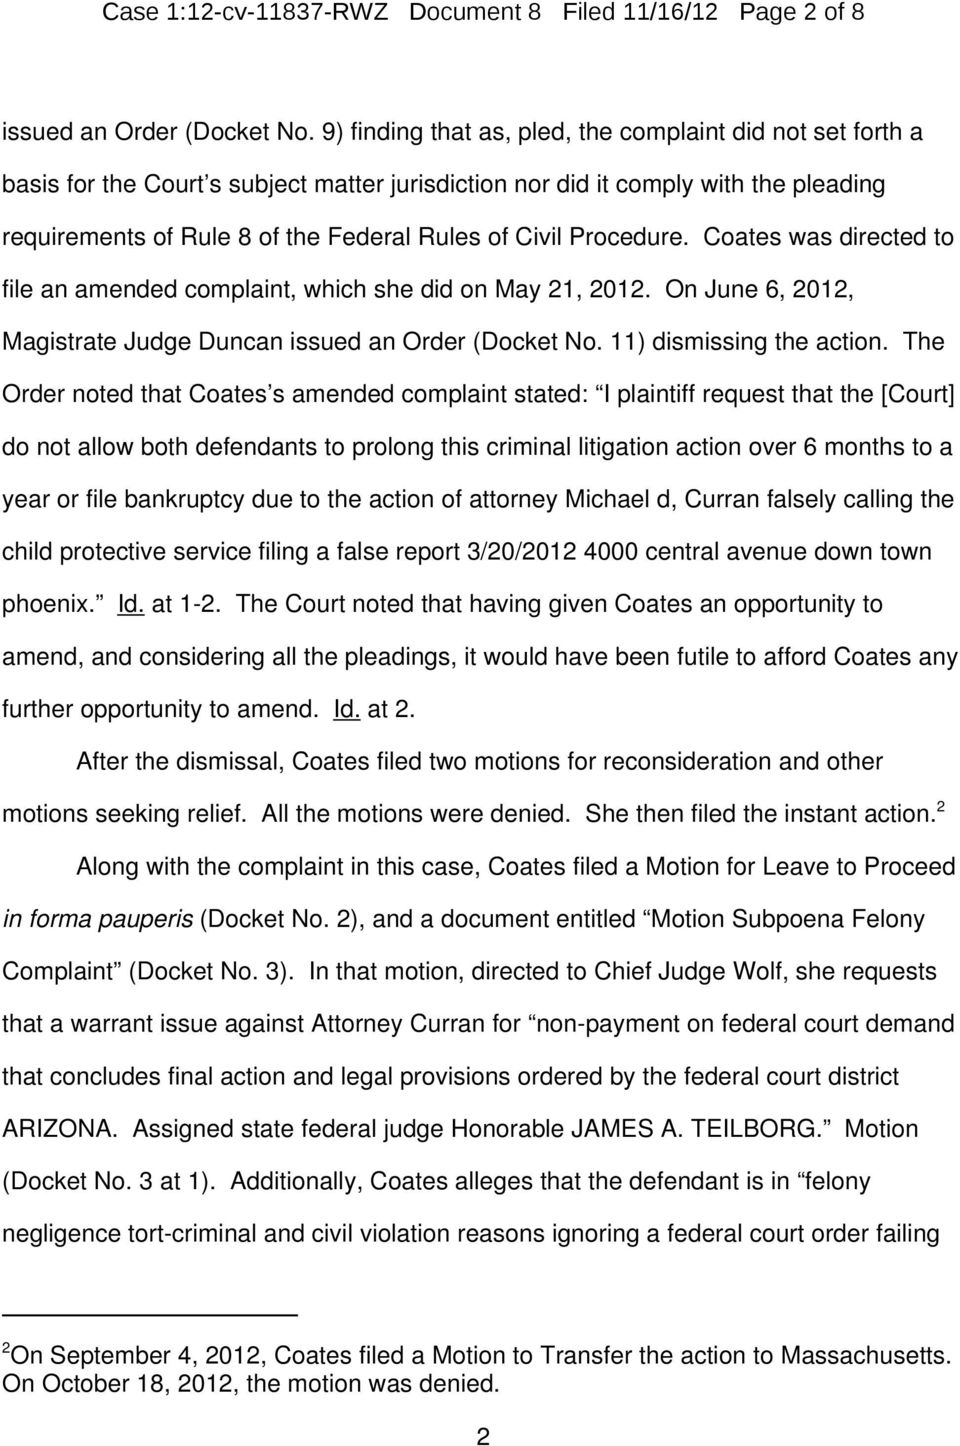 Procedure. Coates was directed to file an amended complaint, which she did on May 21, 2012. On June 6, 2012, Magistrate Judge Duncan issued an Order (Docket No. 11) dismissing the action.